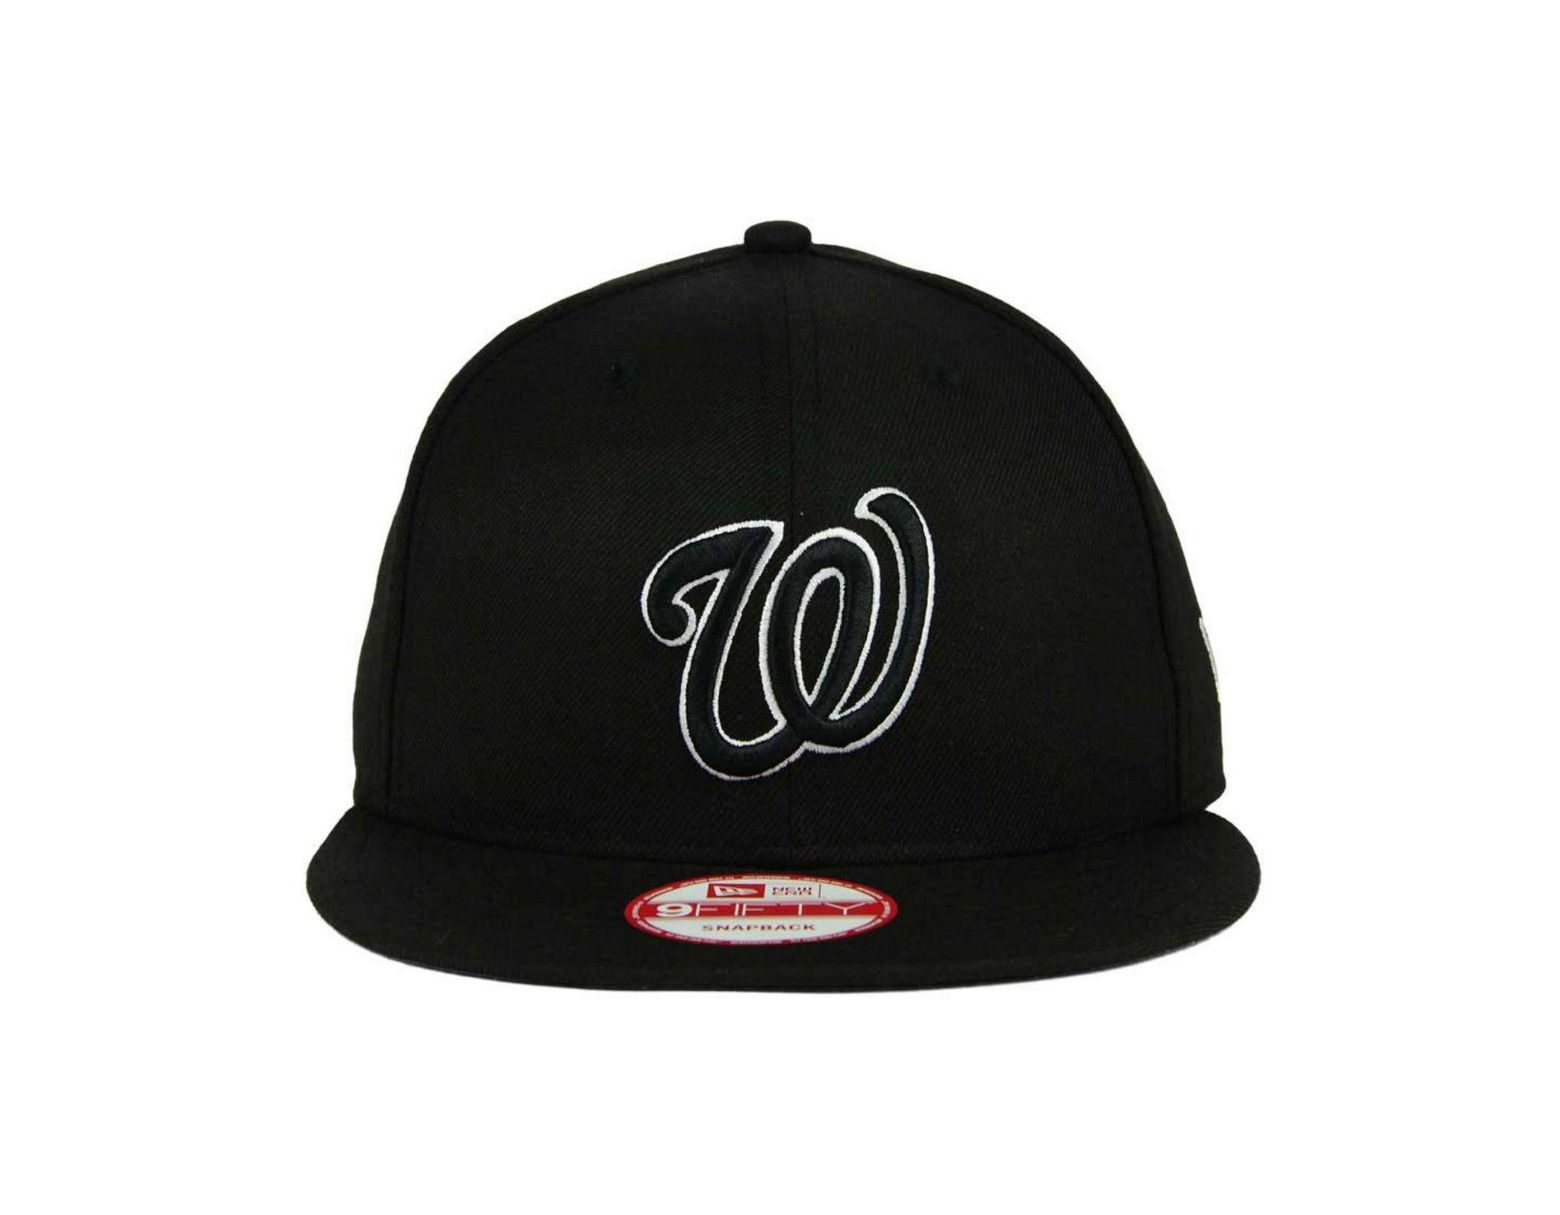 new products 596e9 6295a KTZ Washington Nationals B-dub 9fifty Snapback Cap in Black for Men - Lyst